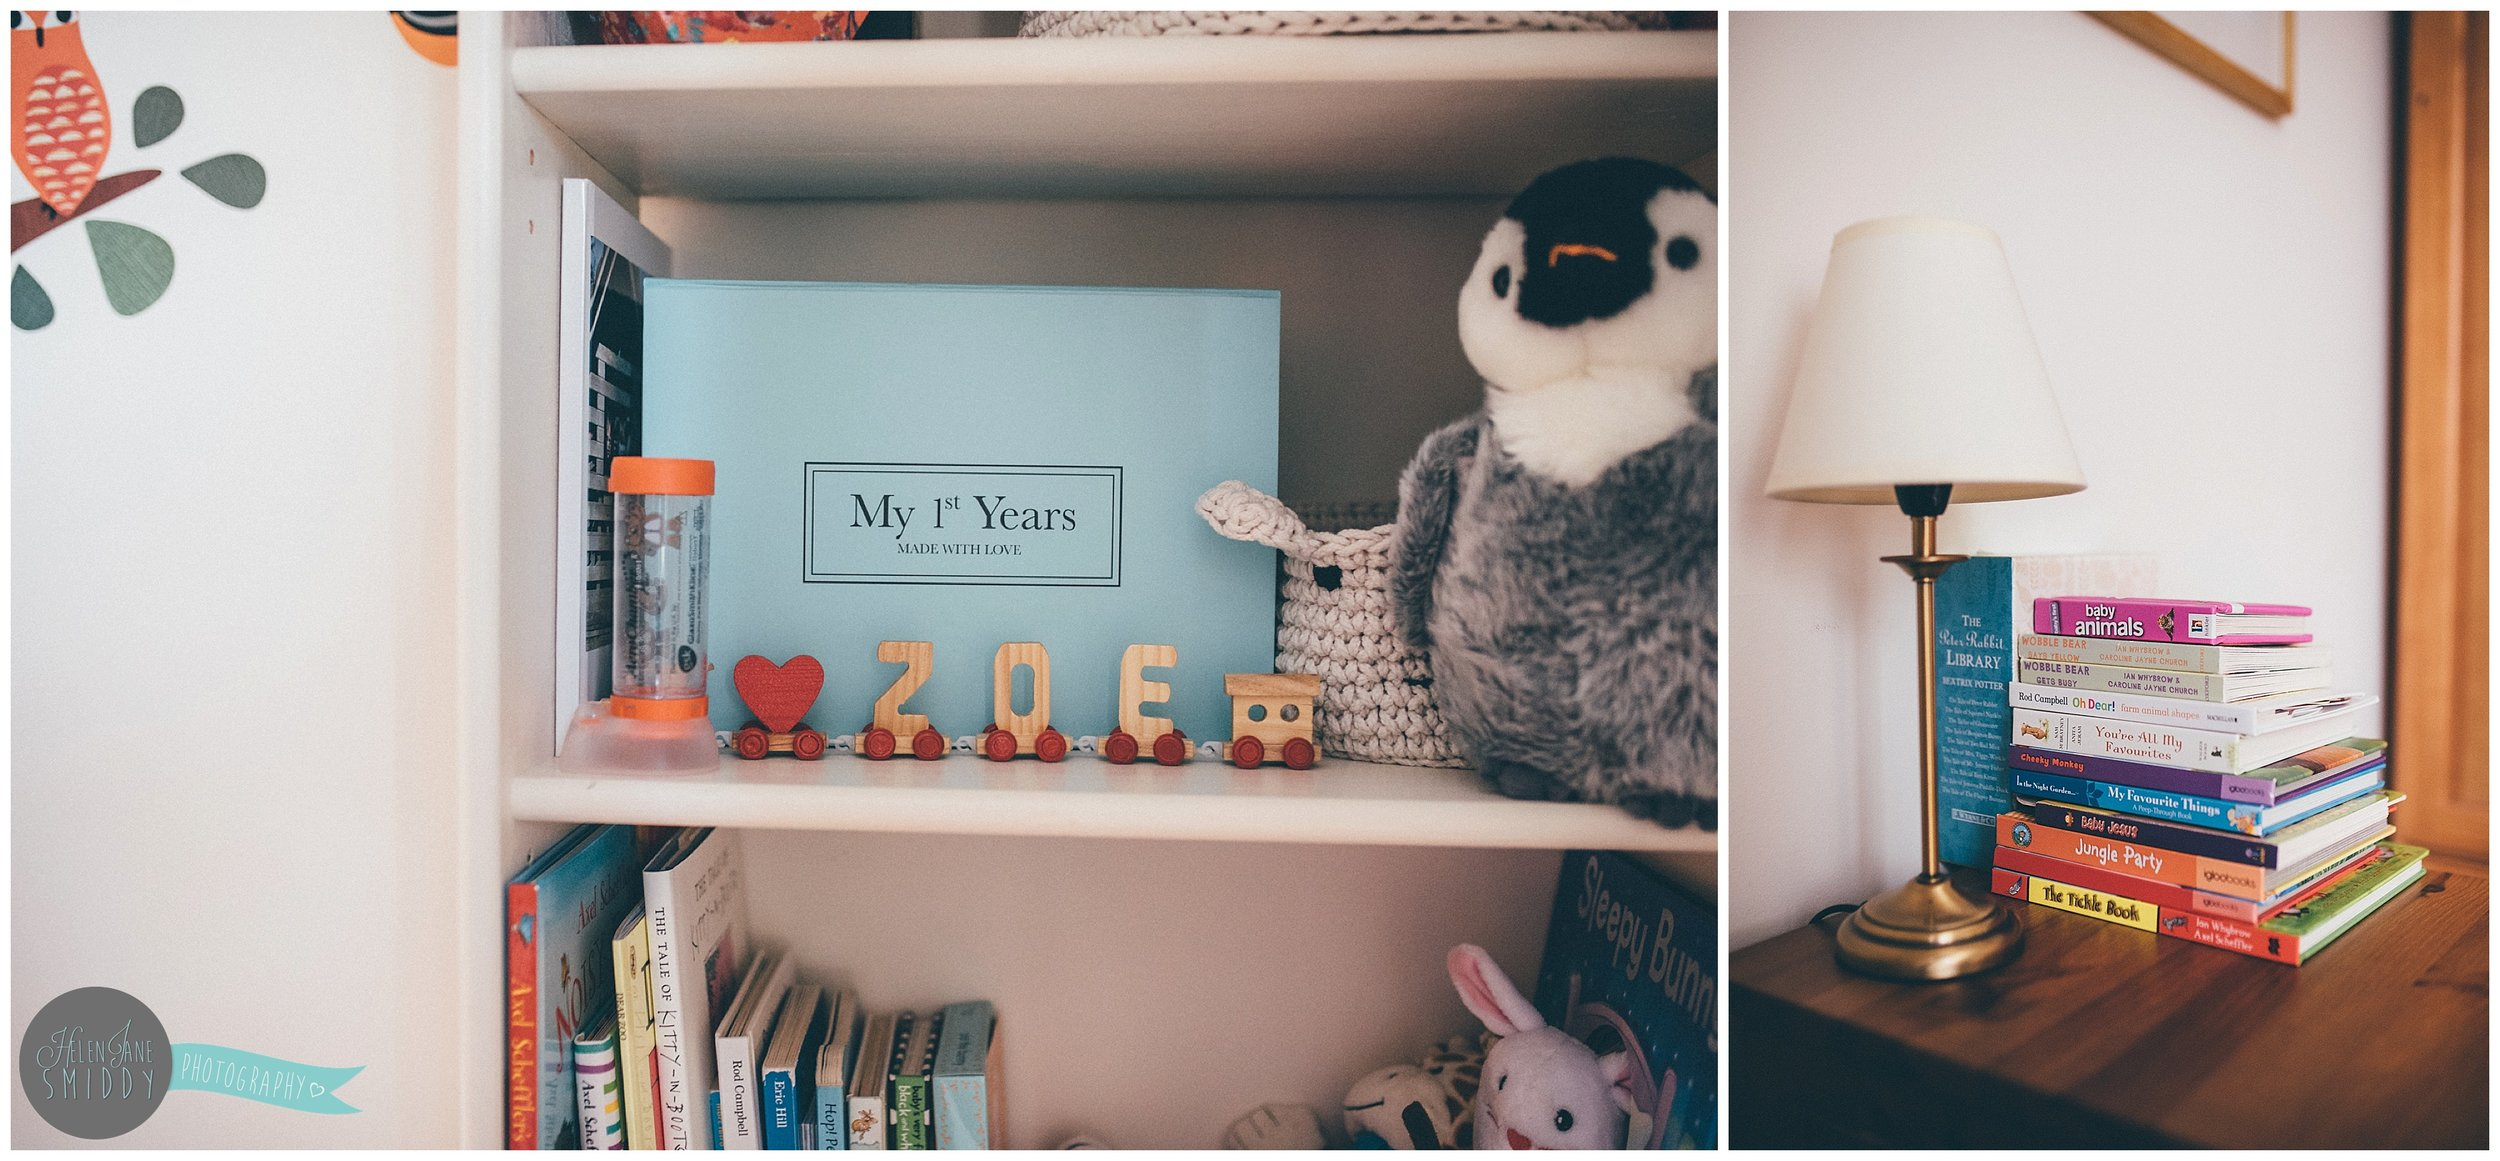 Details of Zoe's bedroom on their Day In The Life photoshoot.